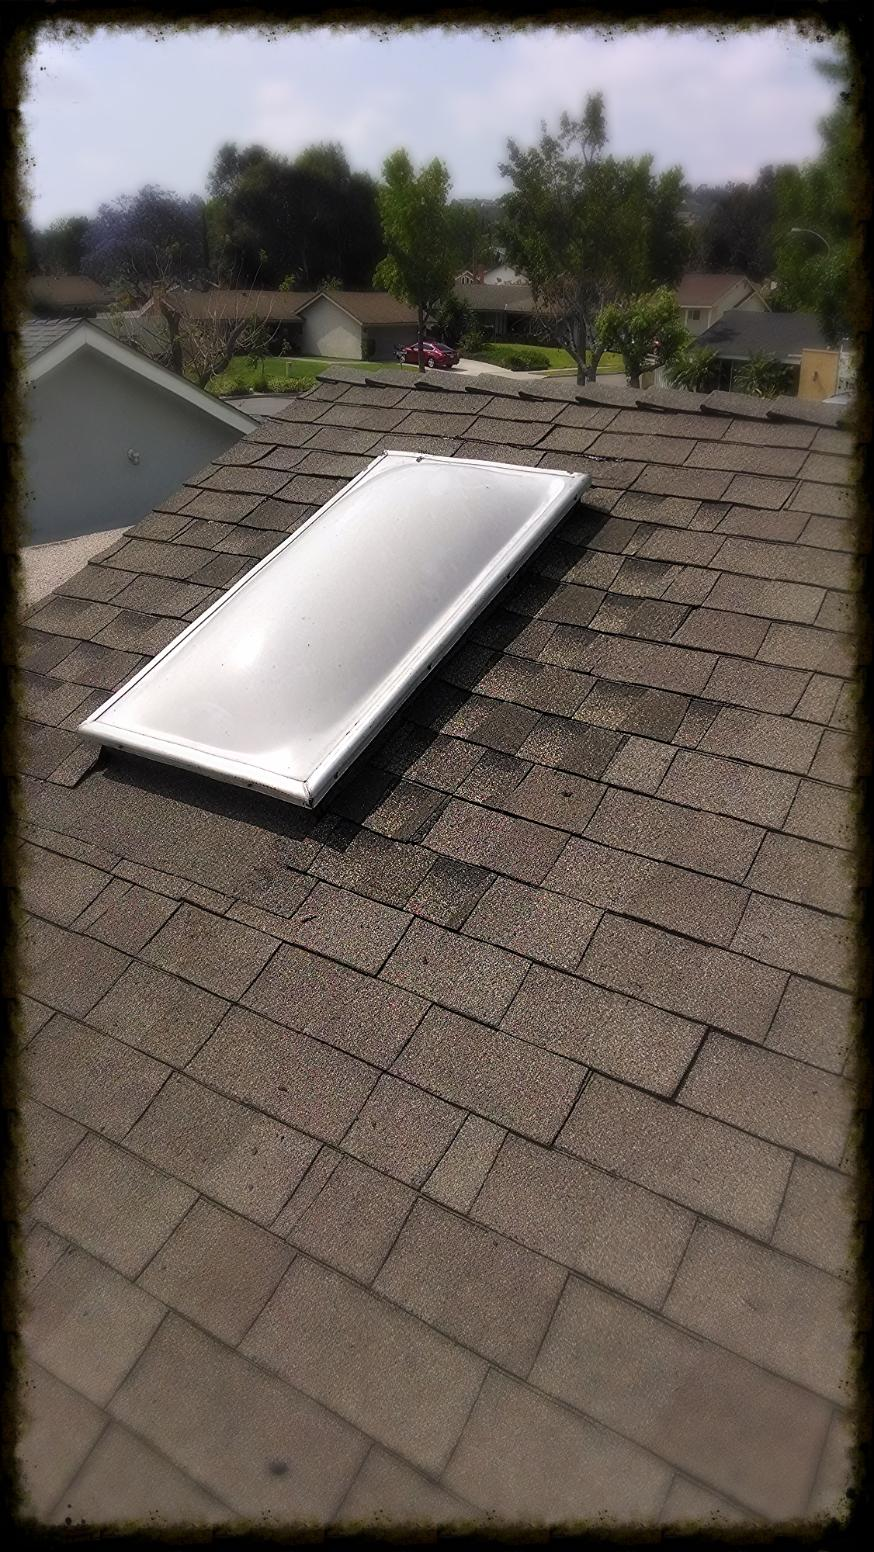 skylight composition shingle repair Sandkamp roofing